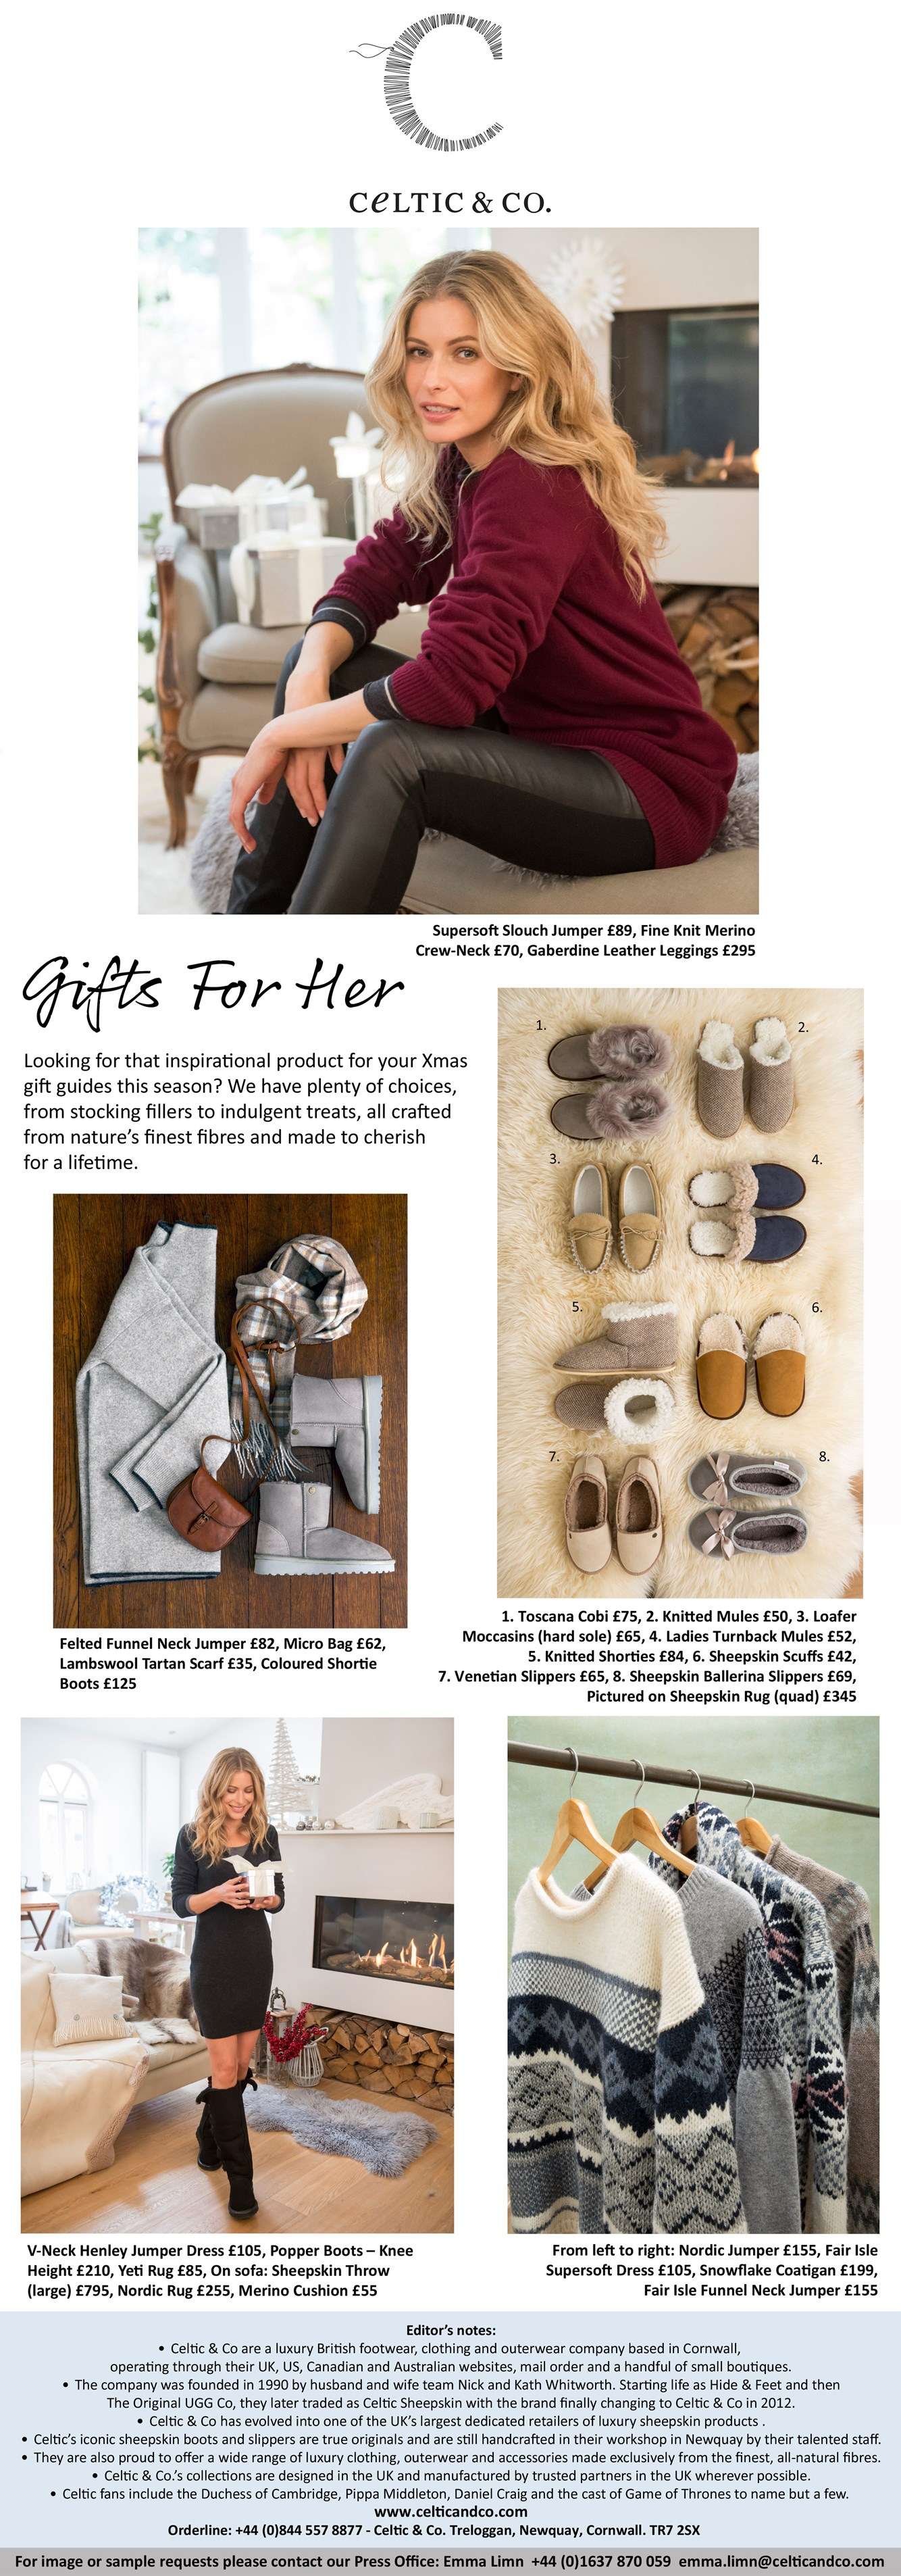 gift ideas for her - celtic and co.jpg